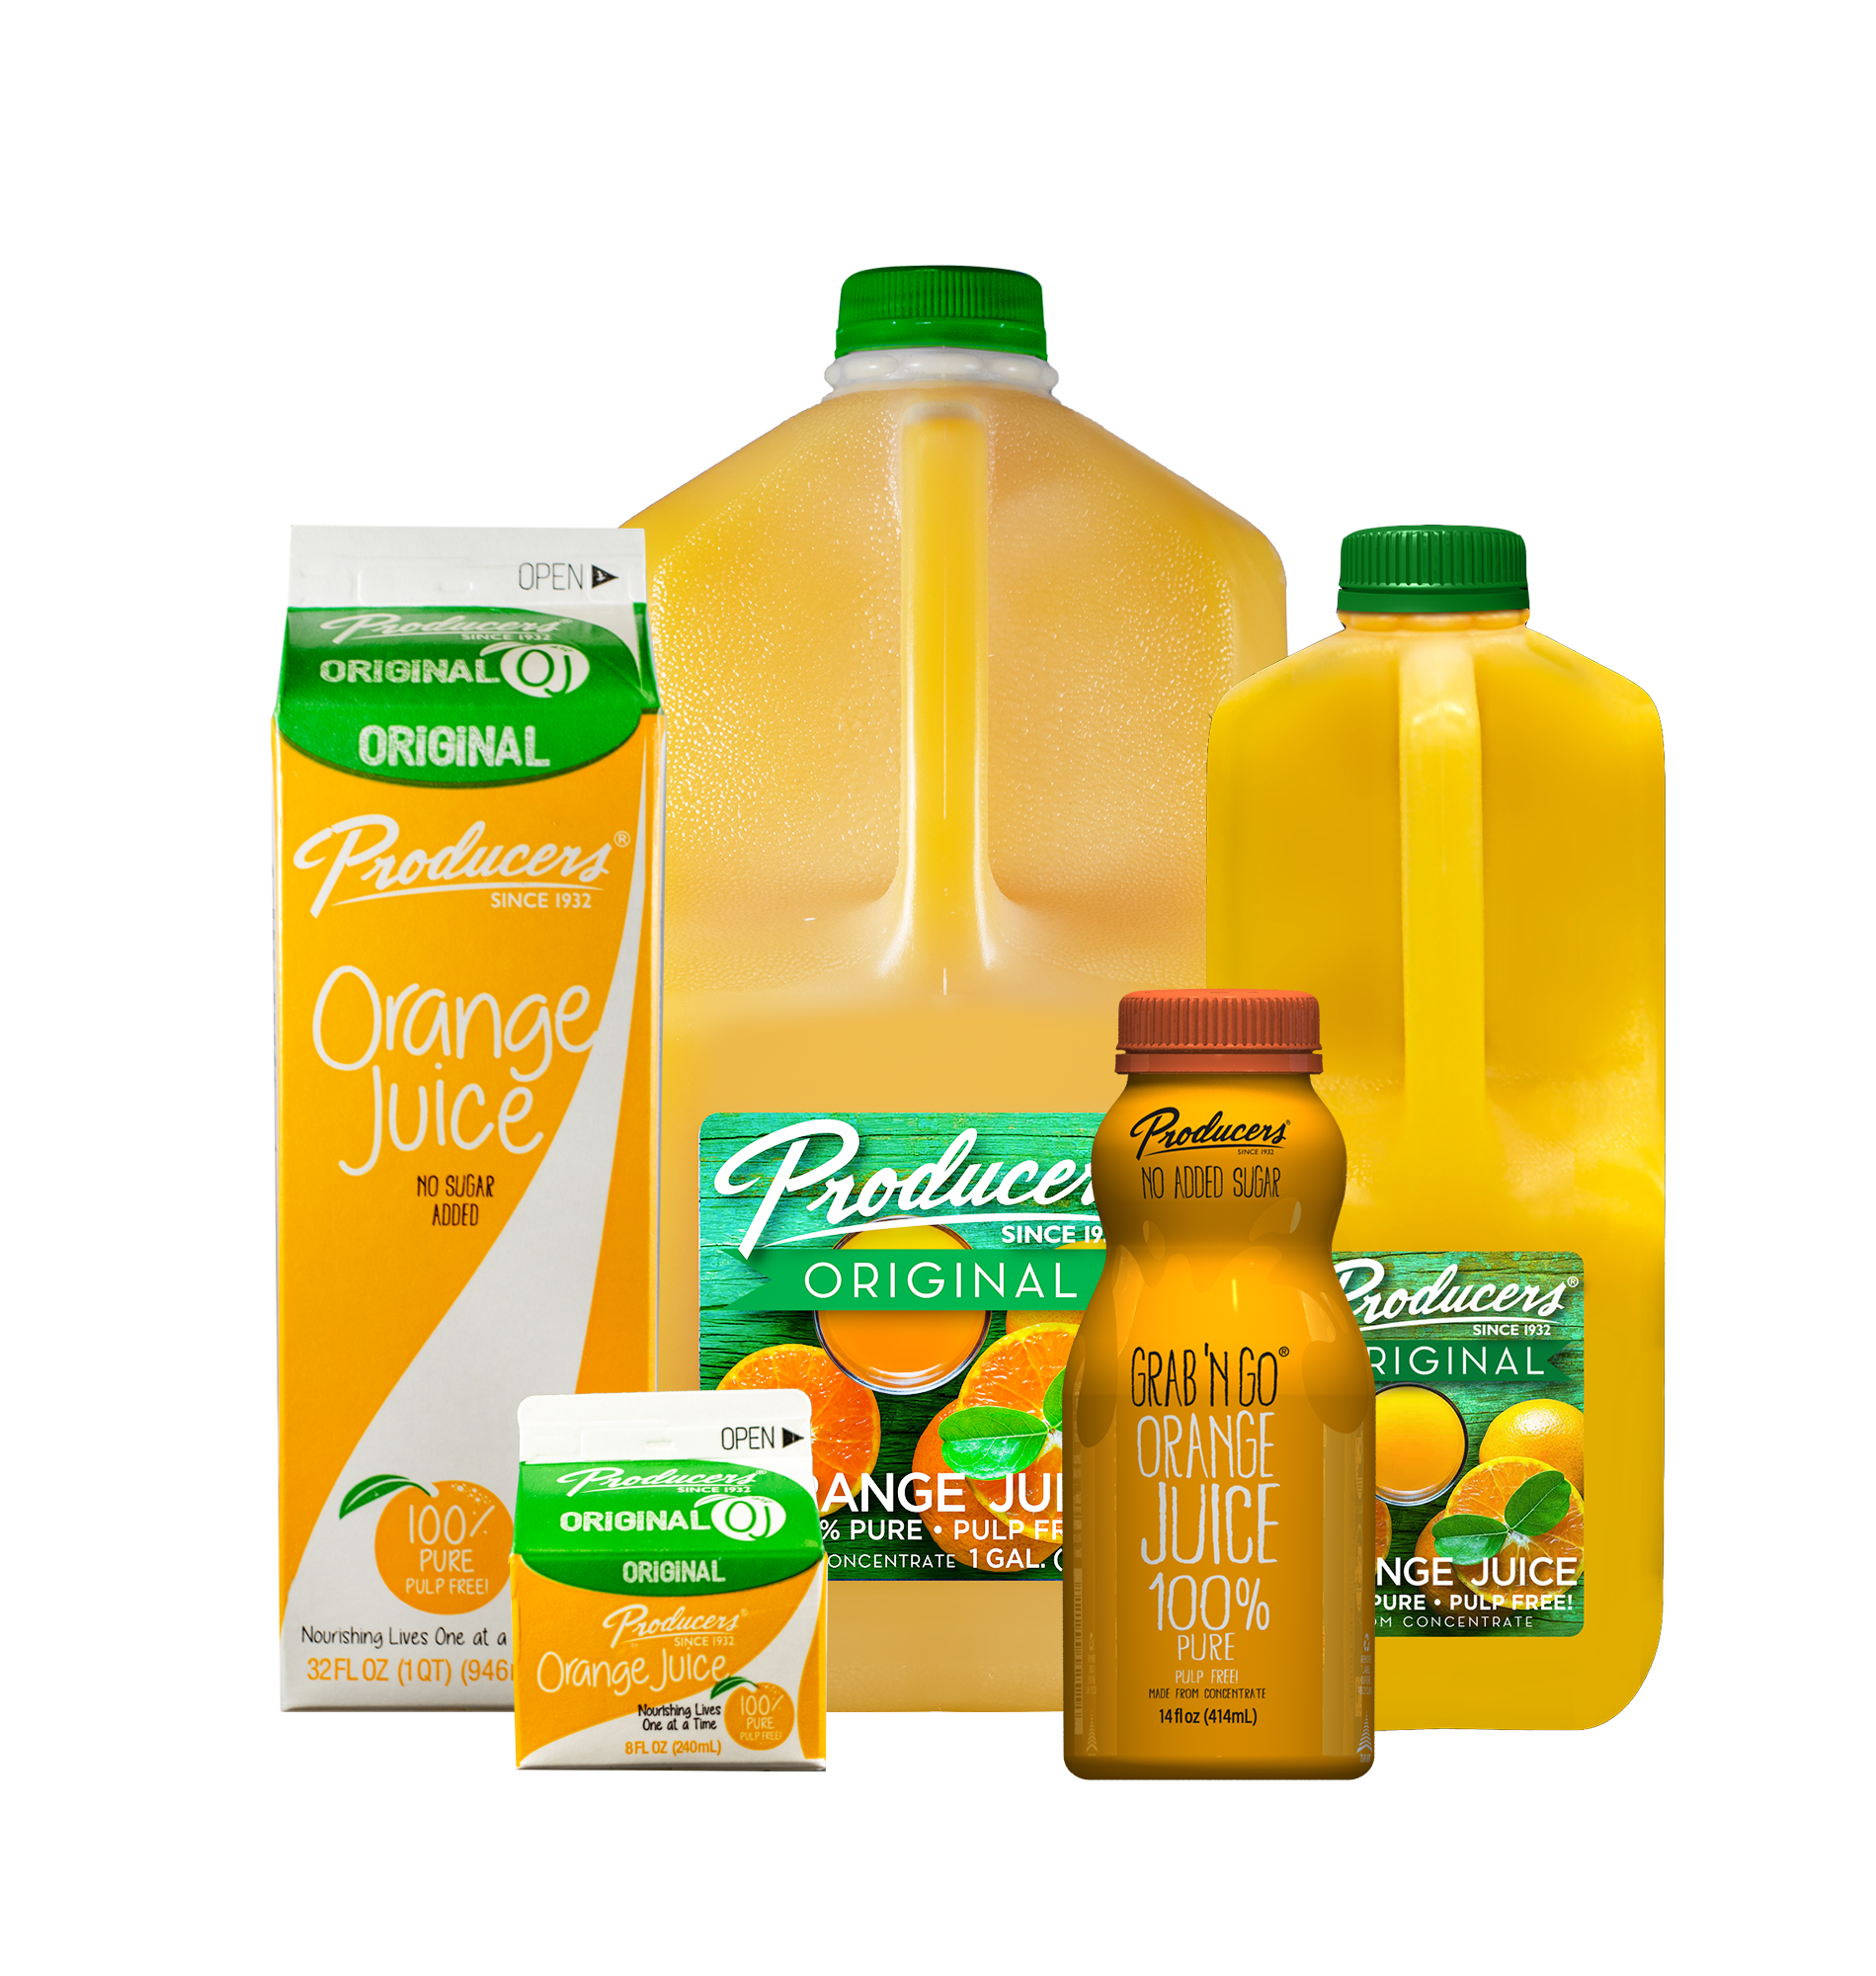 Producers Orange Juice Family: Gallon, Half Gallon, Quart, Grab N Go, 8 fluid ounces.